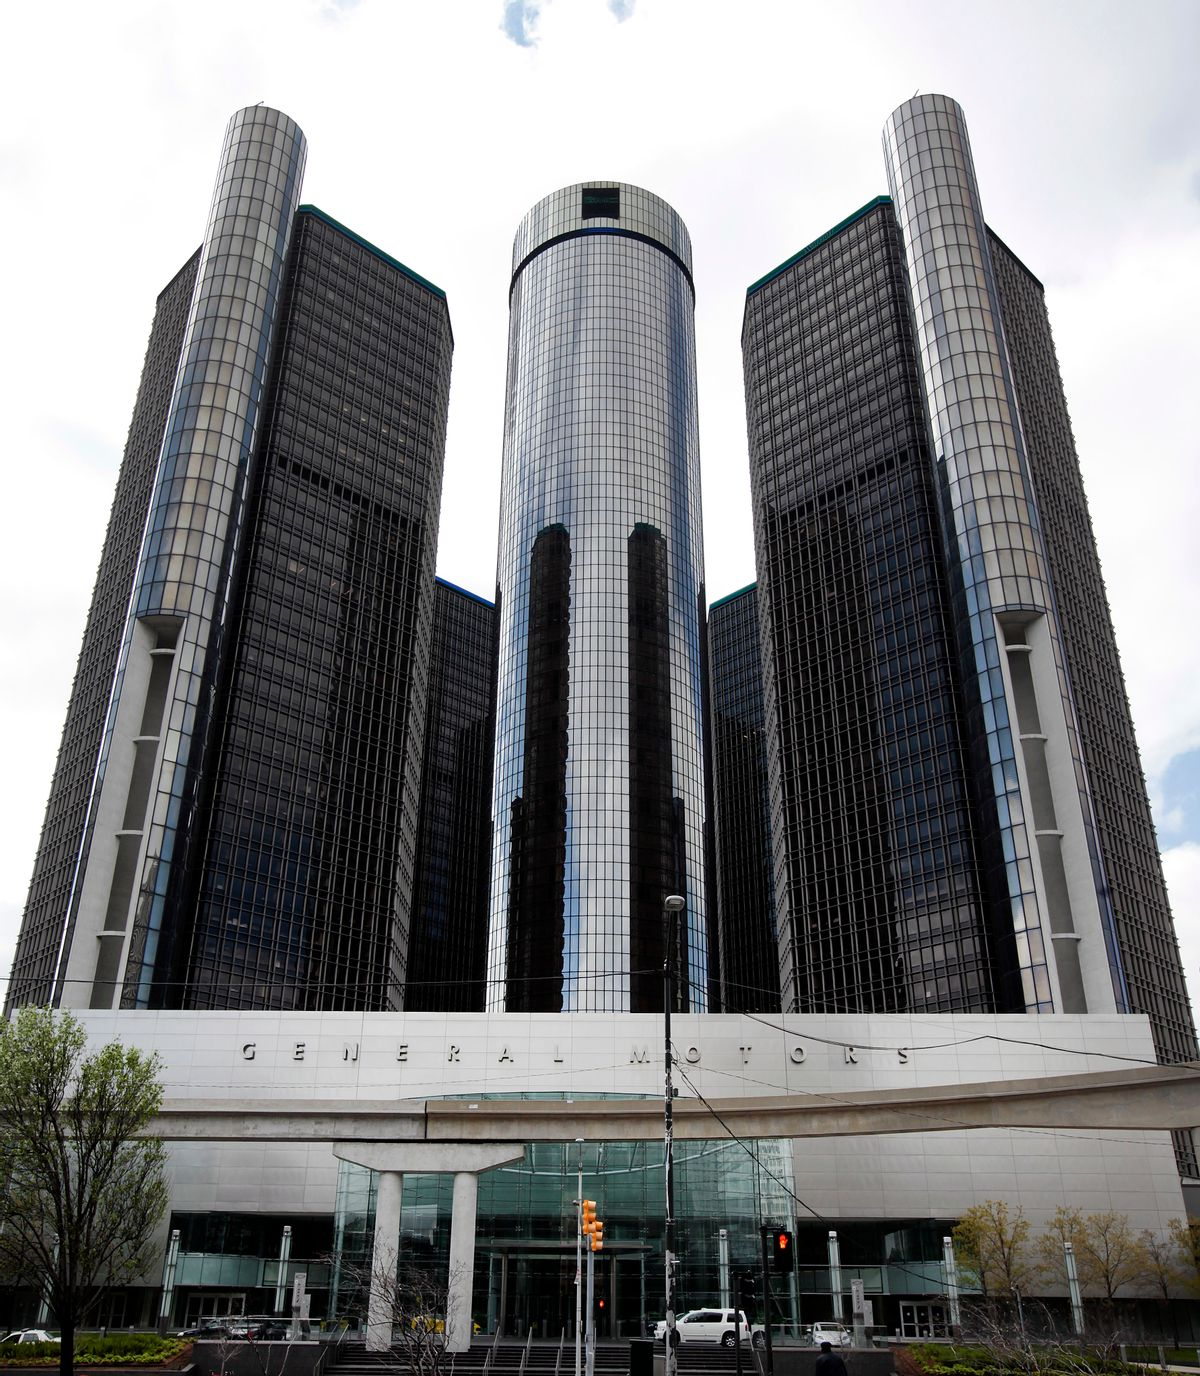 This Friday, May 16 2014 photo shows General Motors' world headquarters in Detroit. U.S. safety regulators fined General Motors a record $35 million Friday for taking at least a decade to disclose defects with ignition switches in small cars that are now linked to at least 13 deaths. (AP Photo/Paul Sancya) (AP)